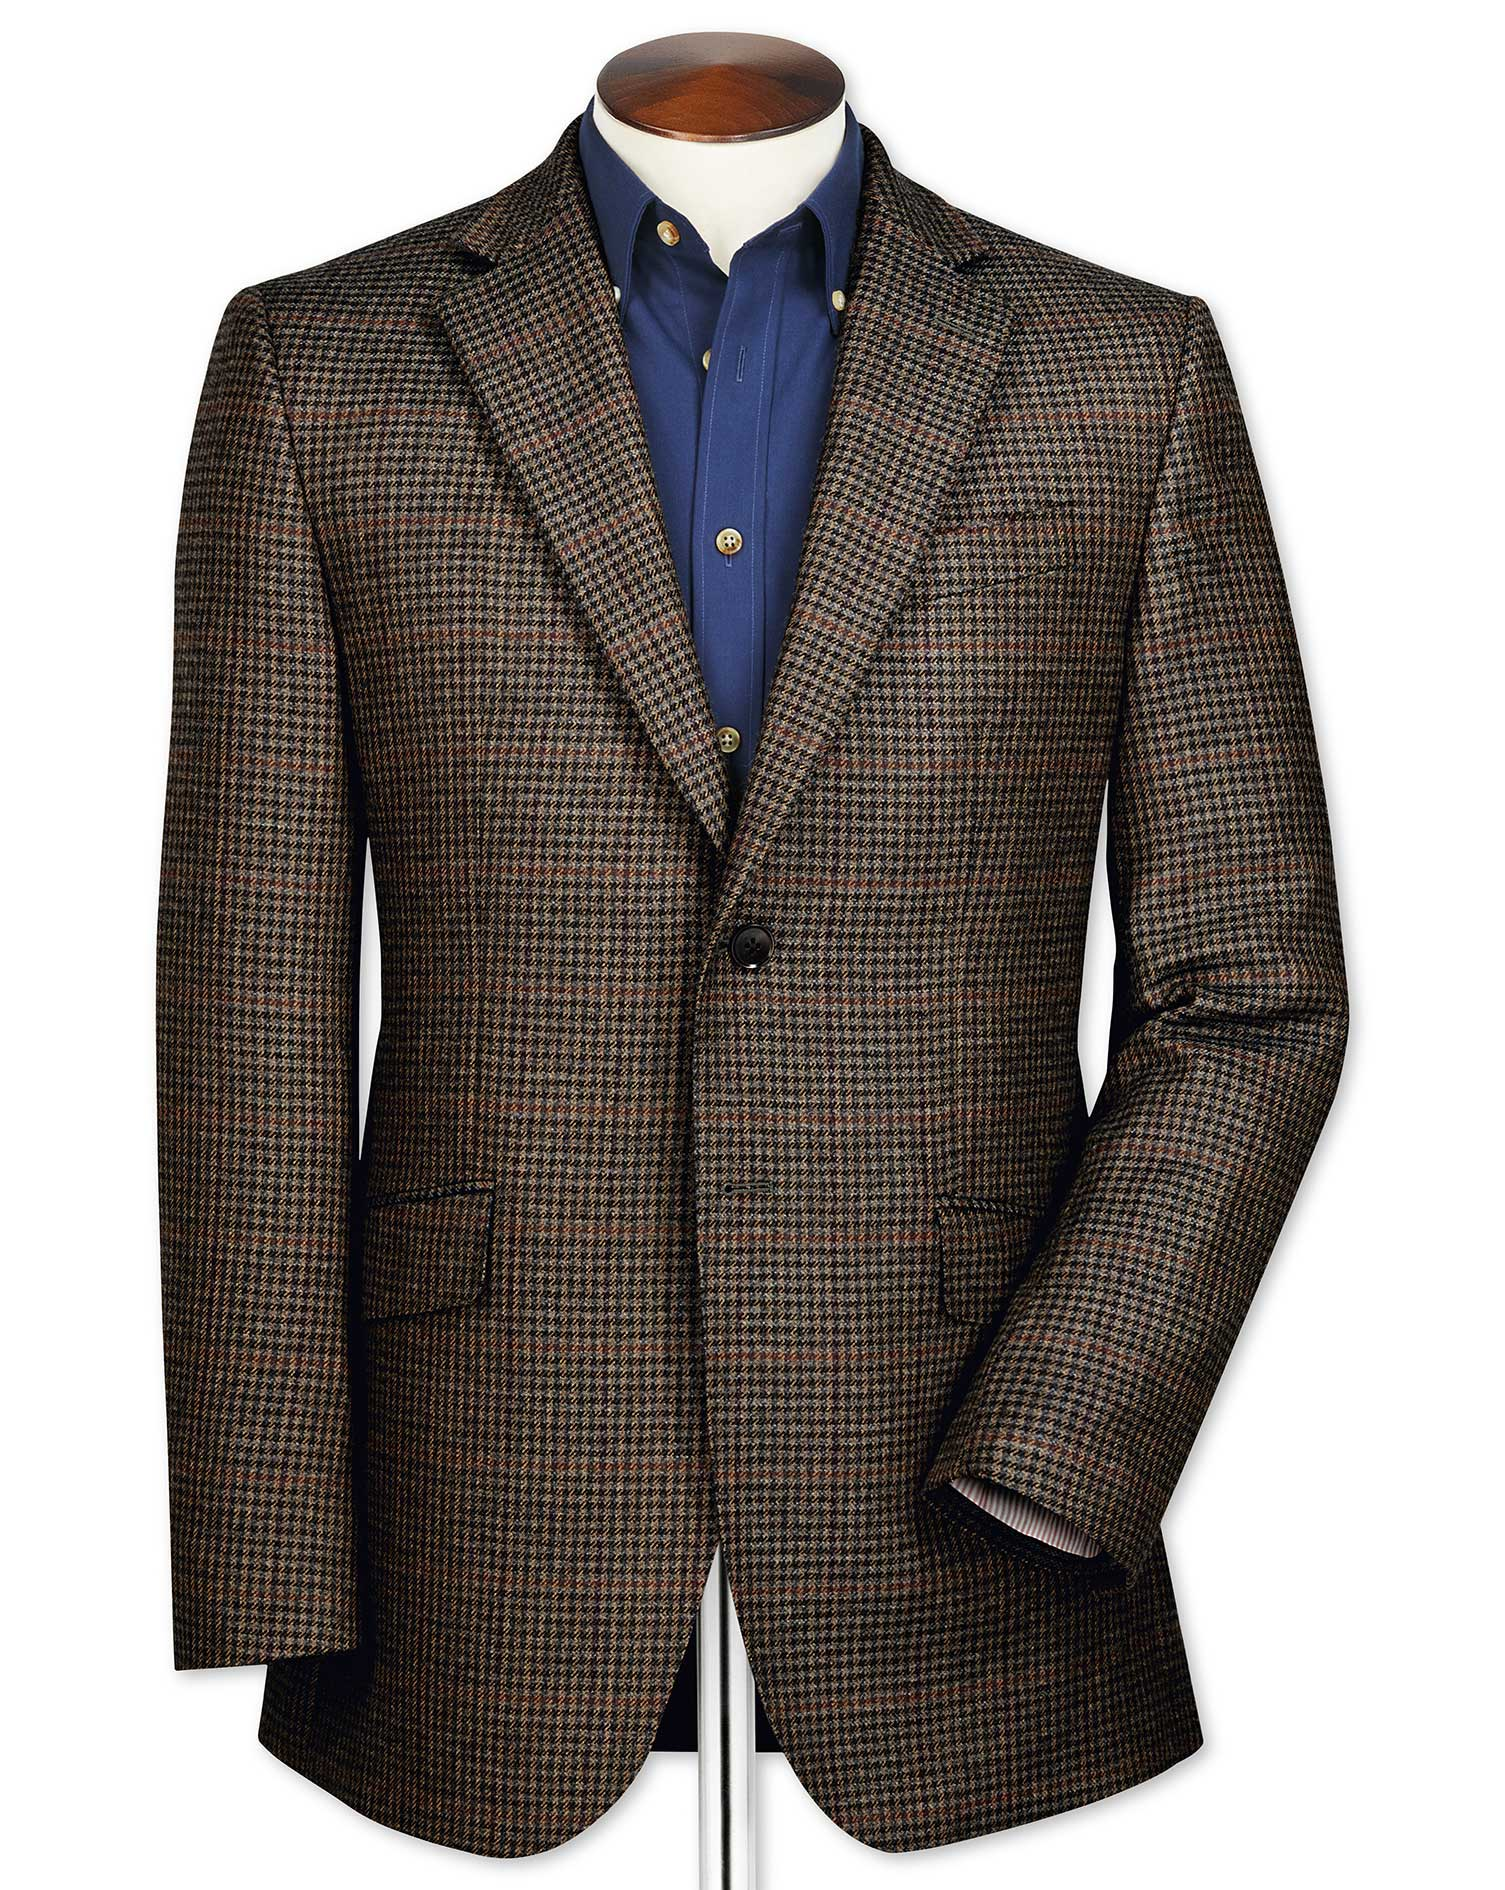 Slim Fit Brown Checkered Lambswool Wool Jacket Size 38 Long by Charles Tyrwhitt